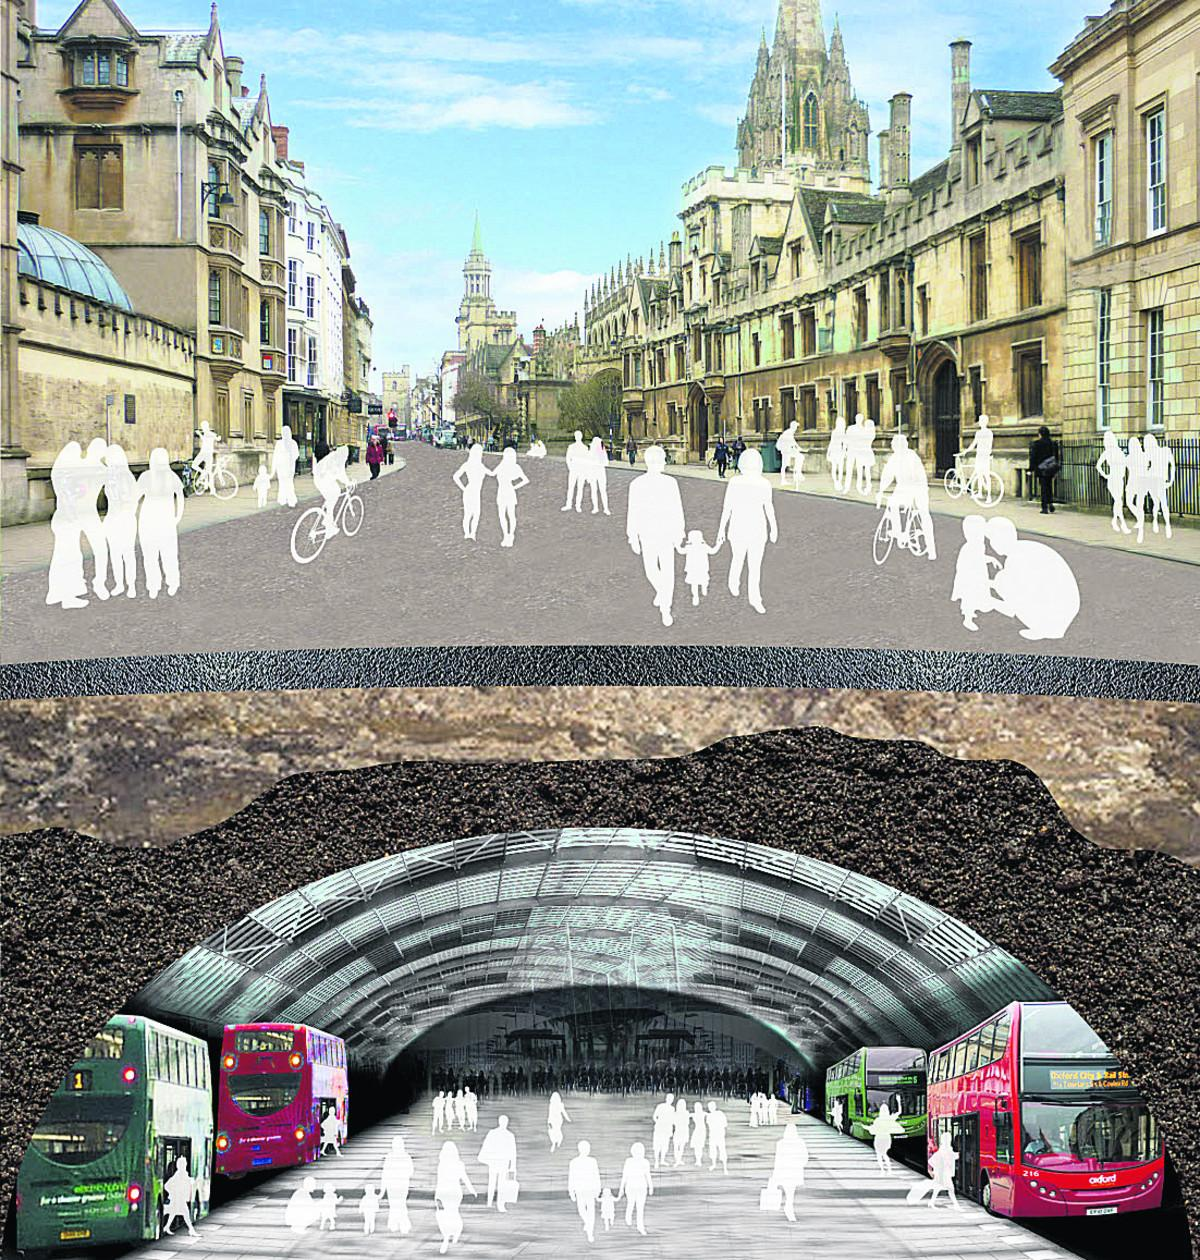 An artist's impression of how the tunnel under High Street might look